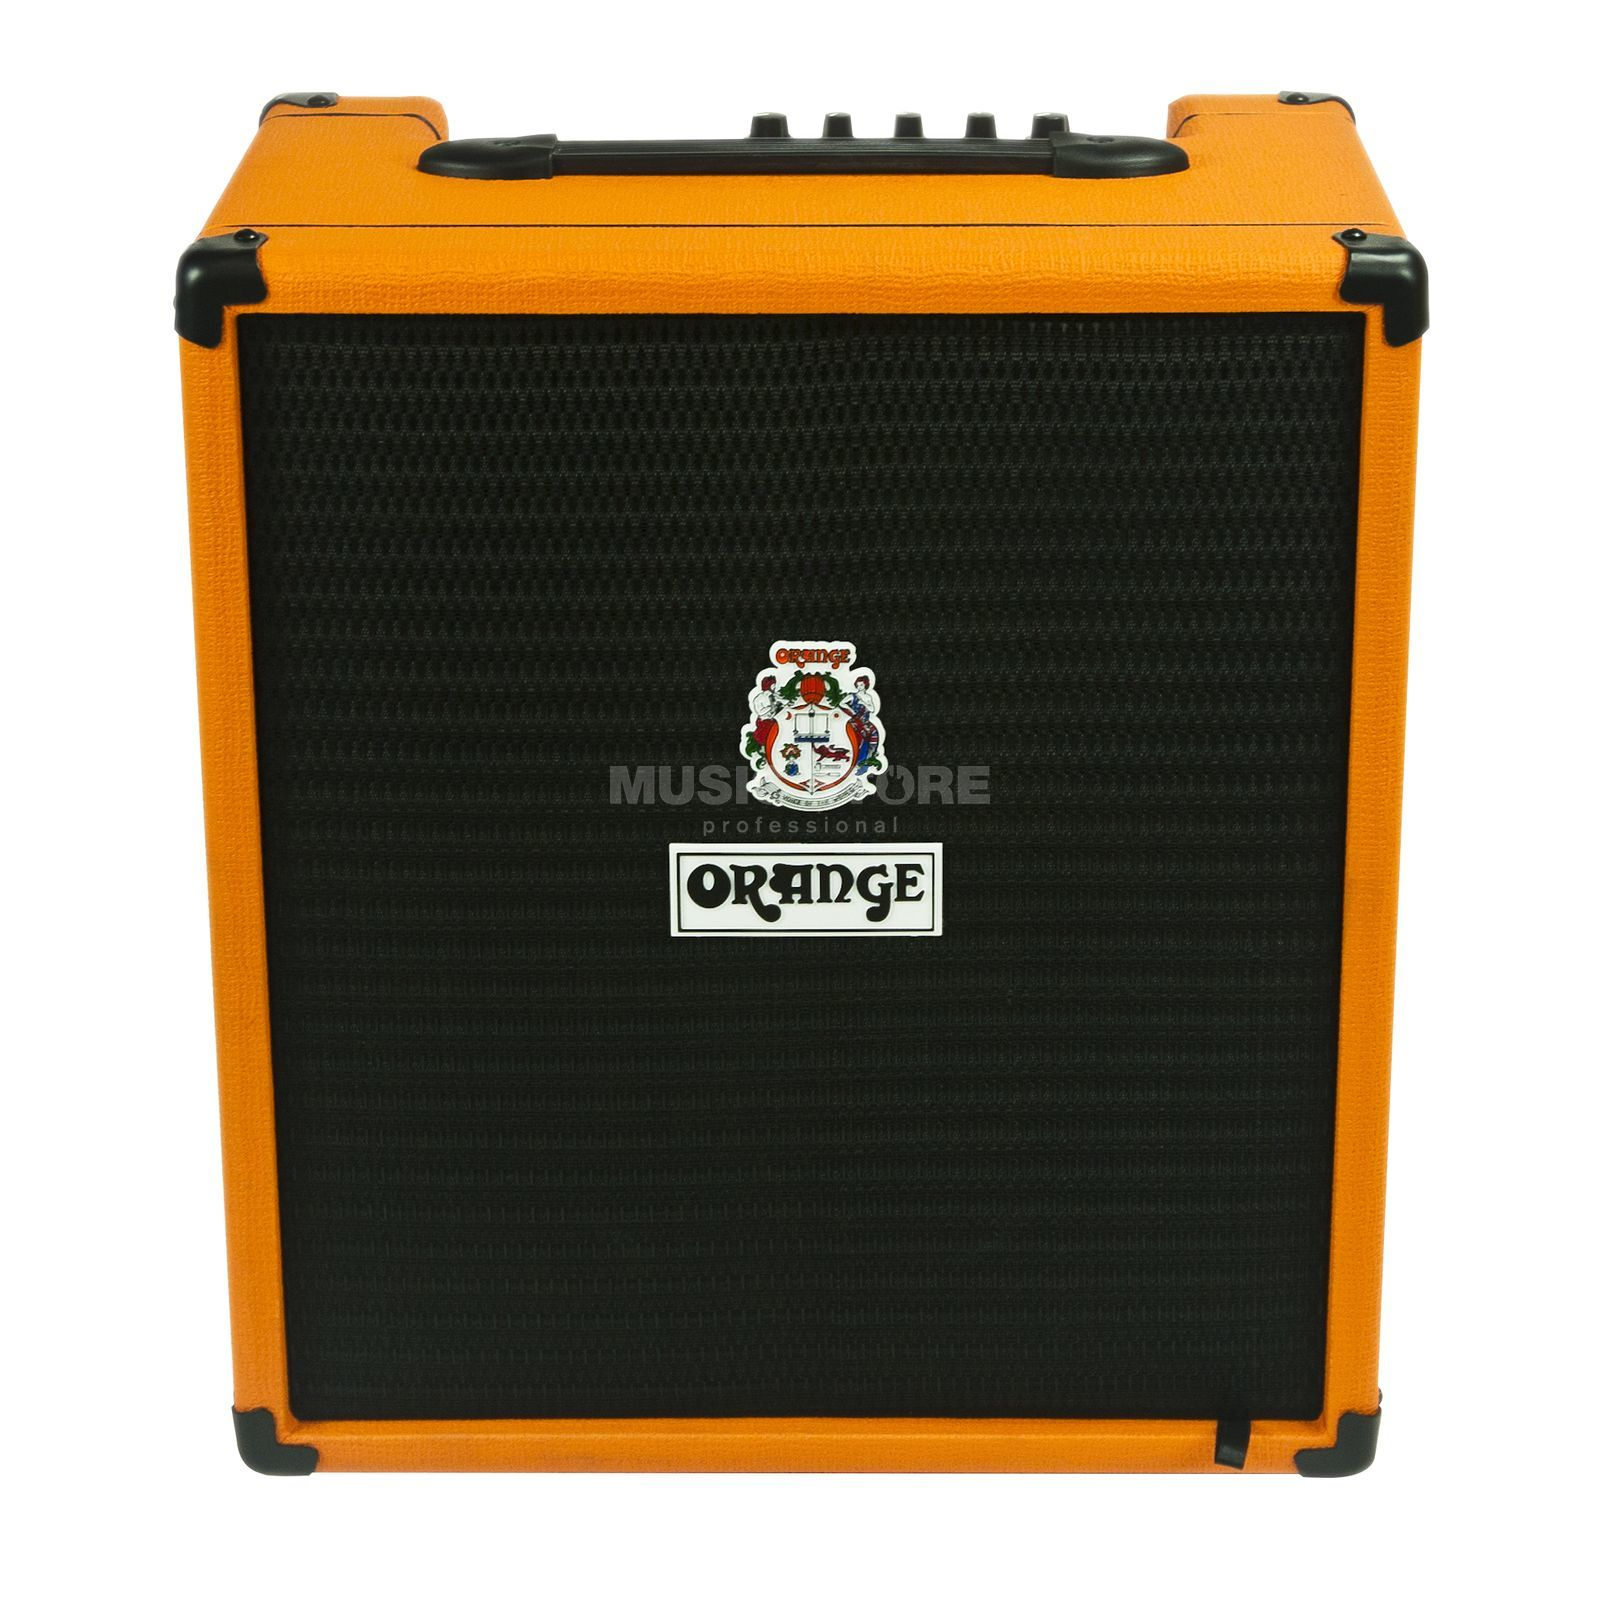 Orange Crush Pix CR50BX Orange amp.Combo p/ baixo  Imagem do produto